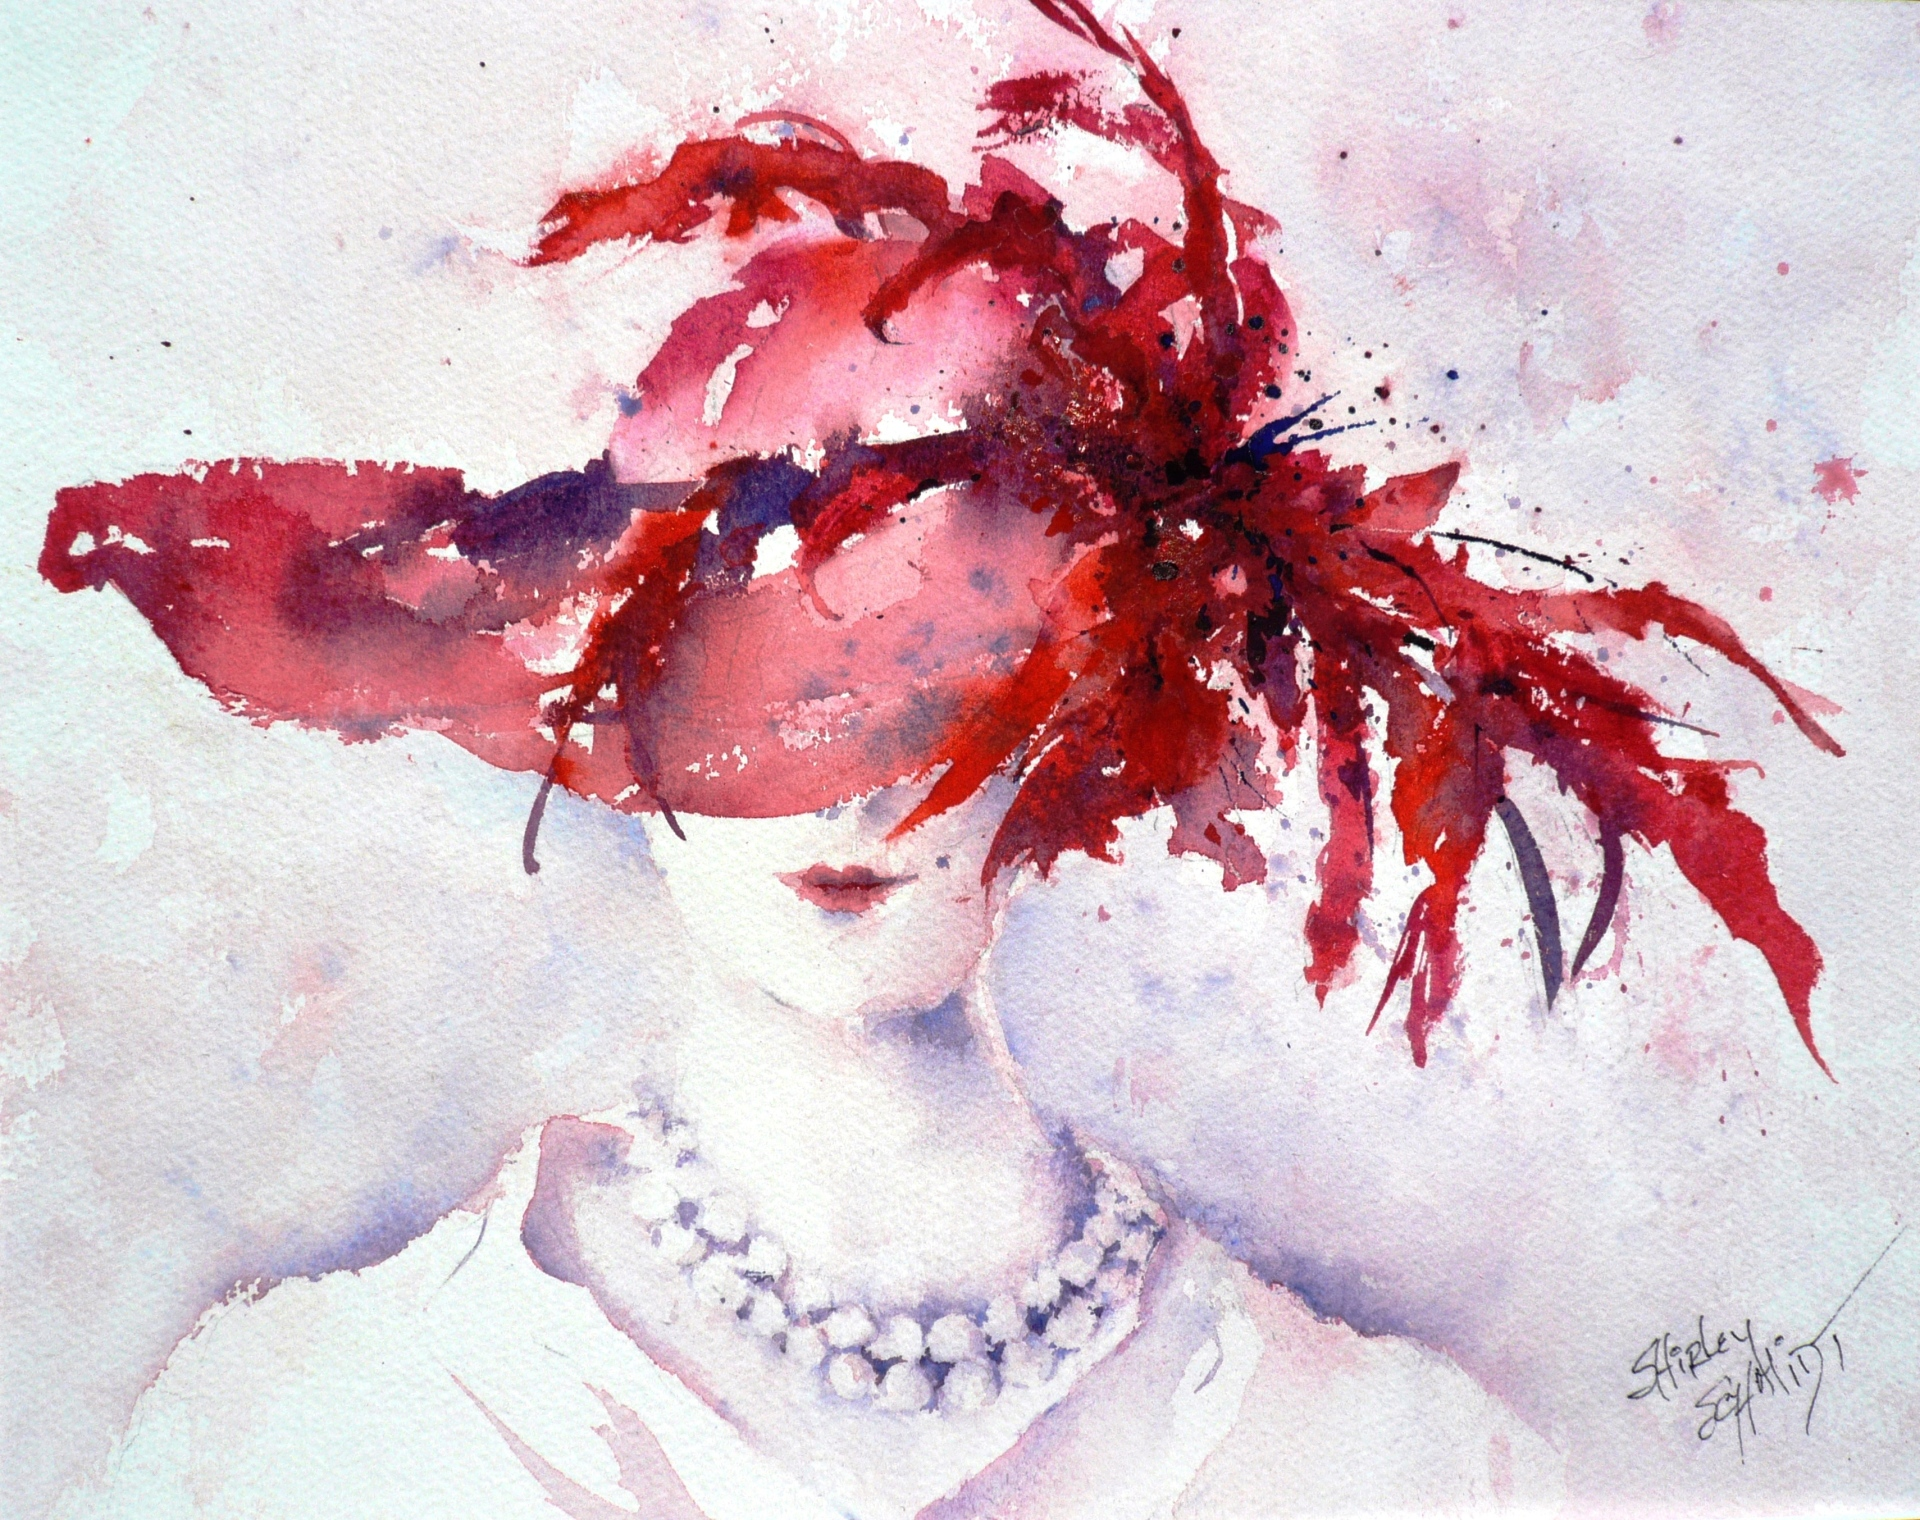 watercolor painting of a woman in a pearl necklace with a beauty mark whose face is mostly hidded by the the large red hat with feathers in it that she is wearing